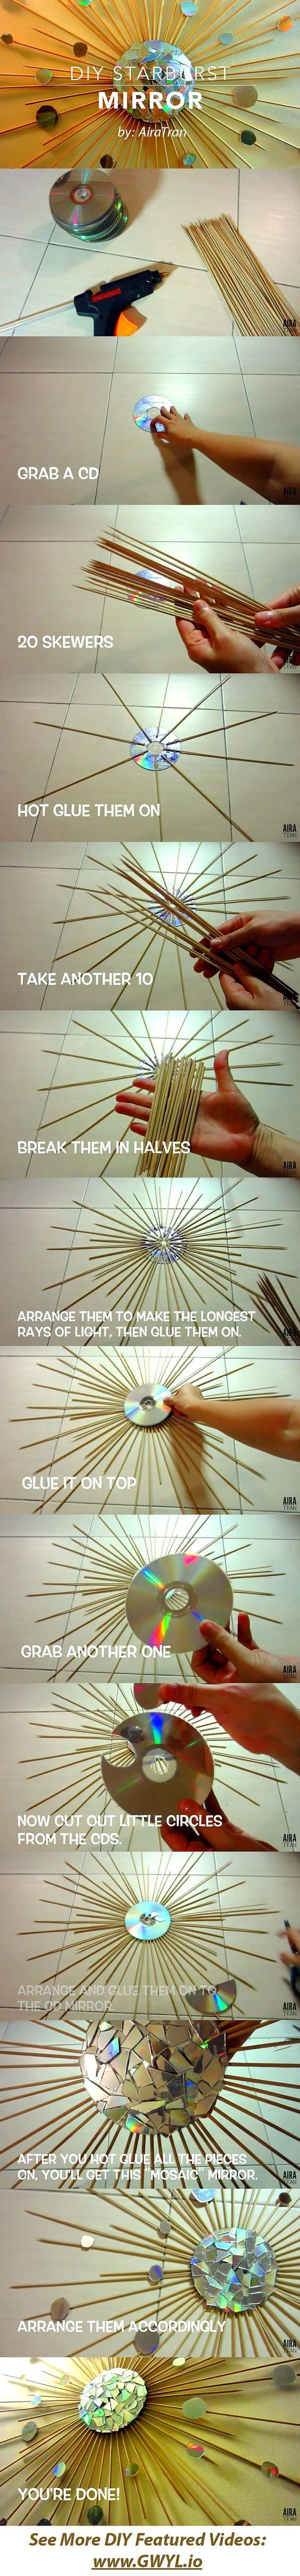 Do you have old CD's laying around your house? Why not turn them into a pretty home decor instead. See video and full written instructions here==>    DIY Starburst Mirror   http://gwyl.io/diy-starburst-mirror/